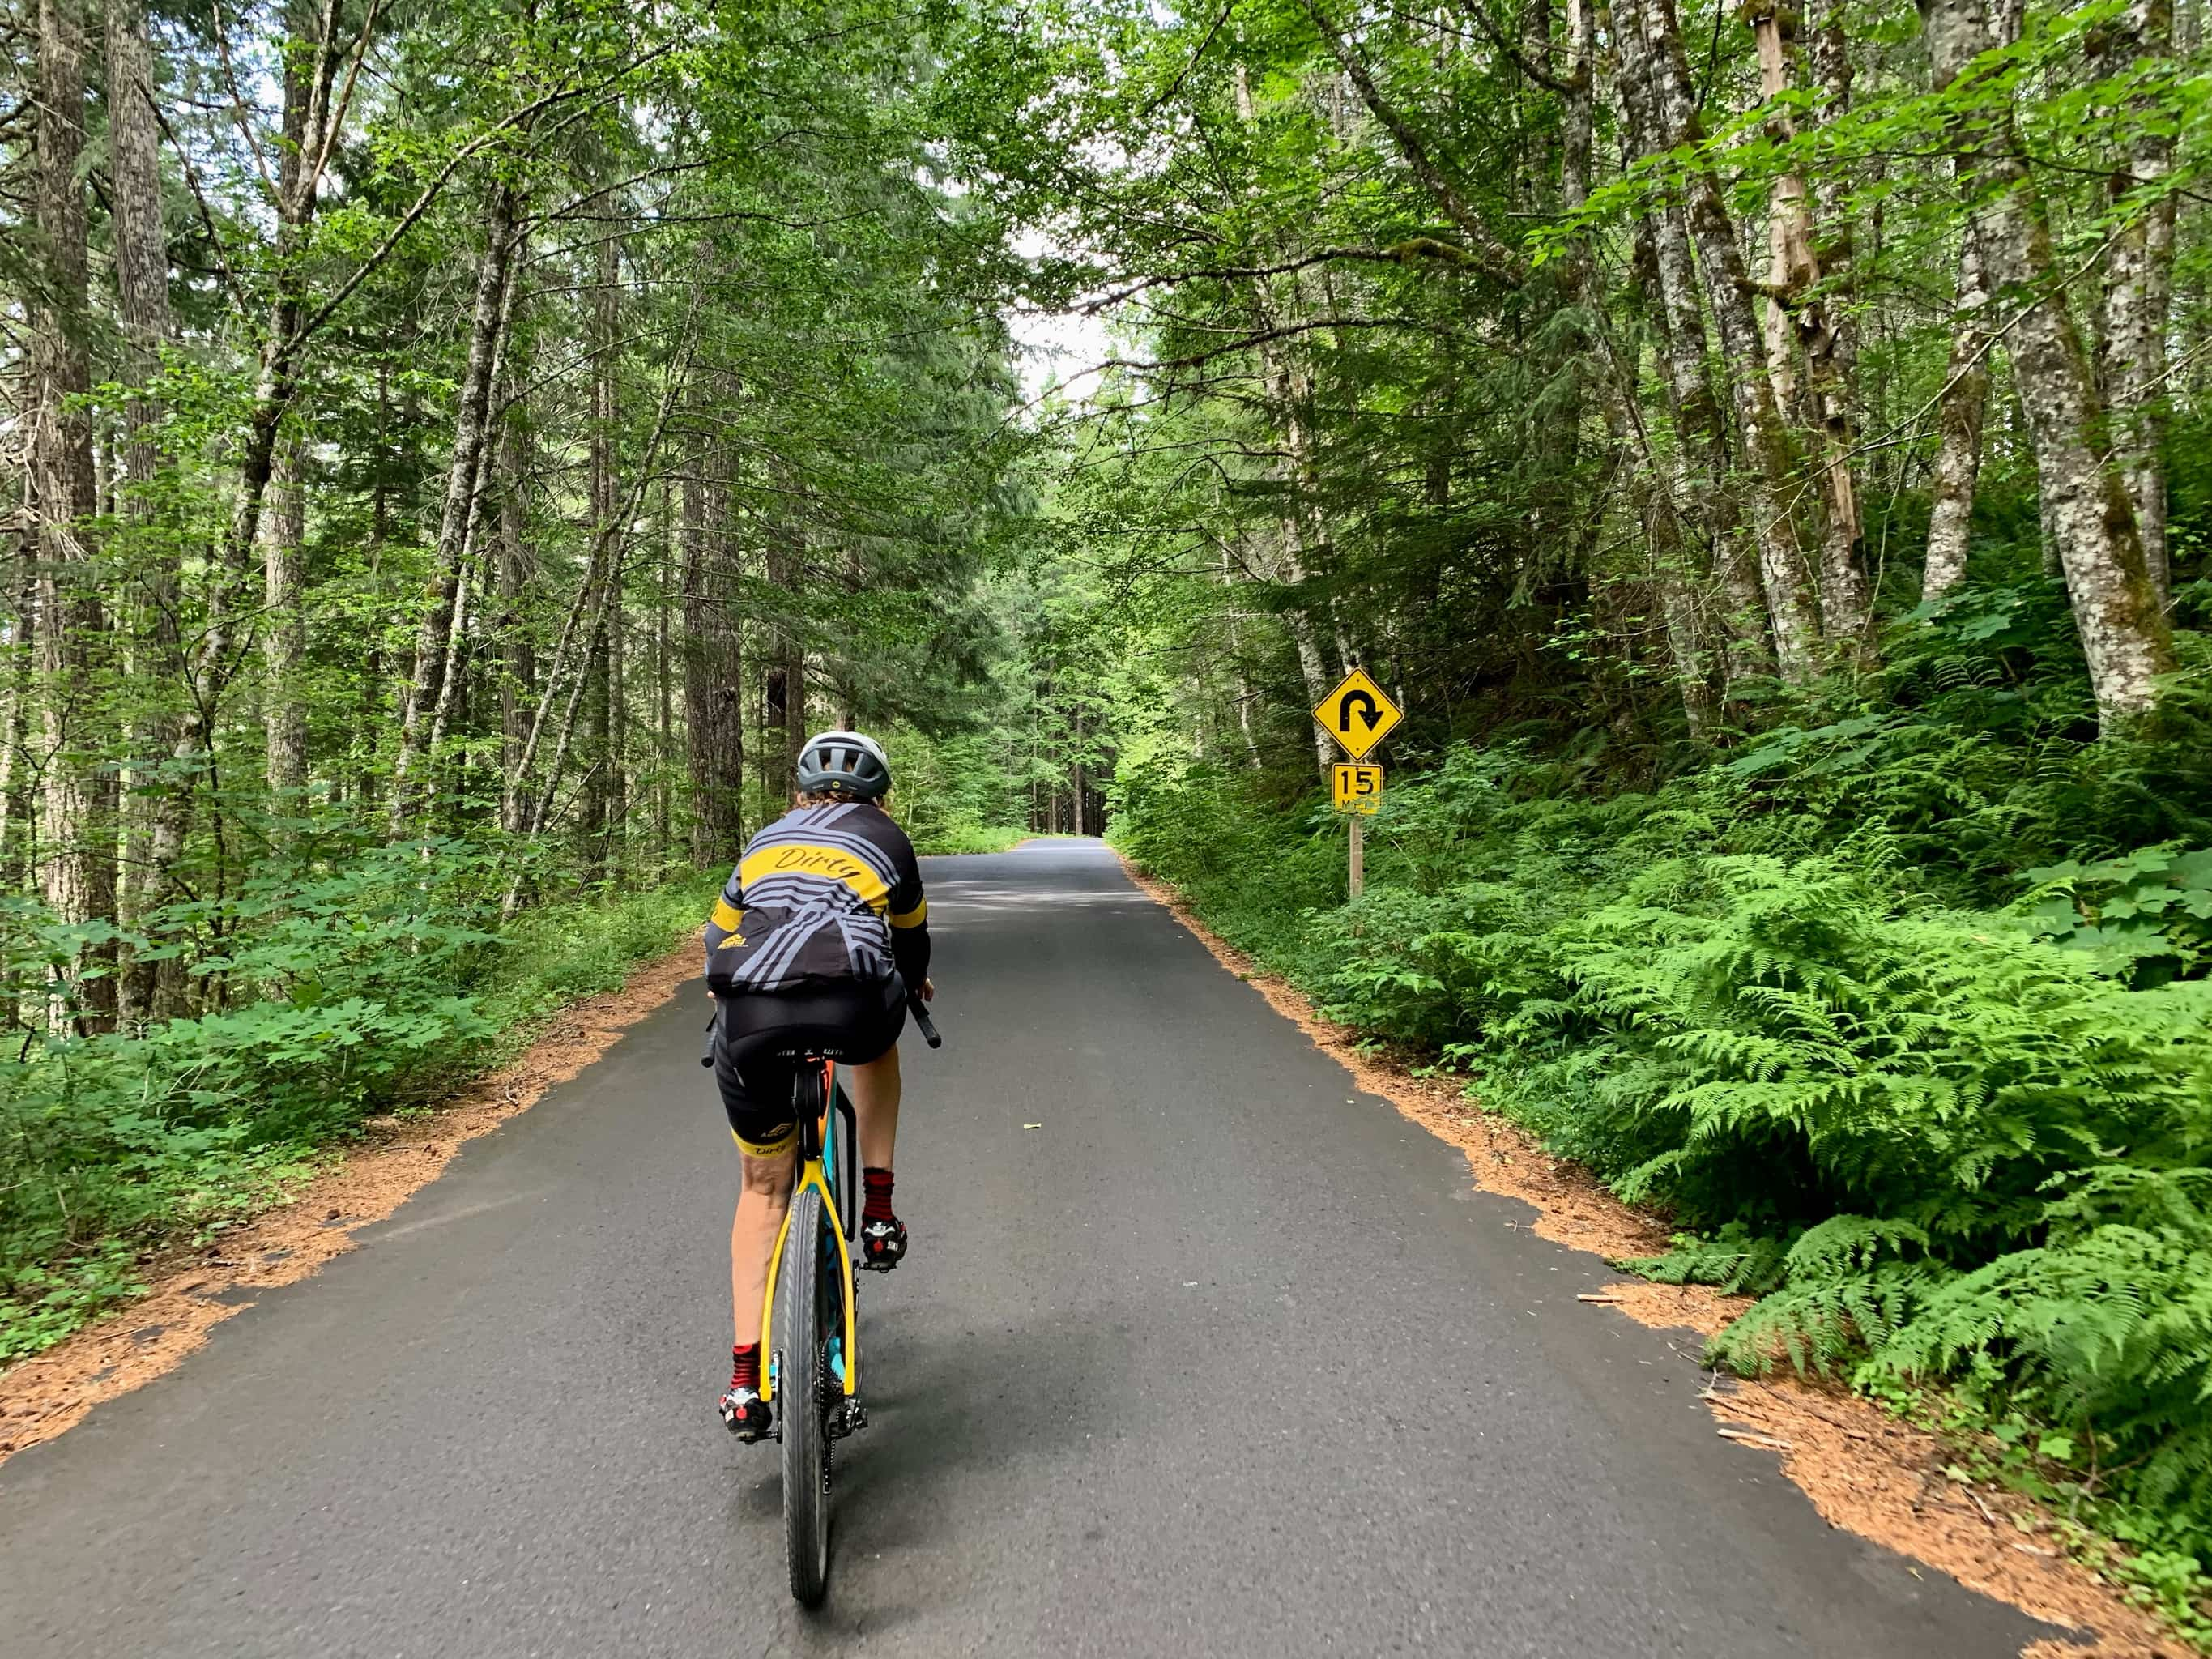 Cycling through dense tree canopy on NF-65 in Gifford Pinchot National forest near Stabler, Washington.